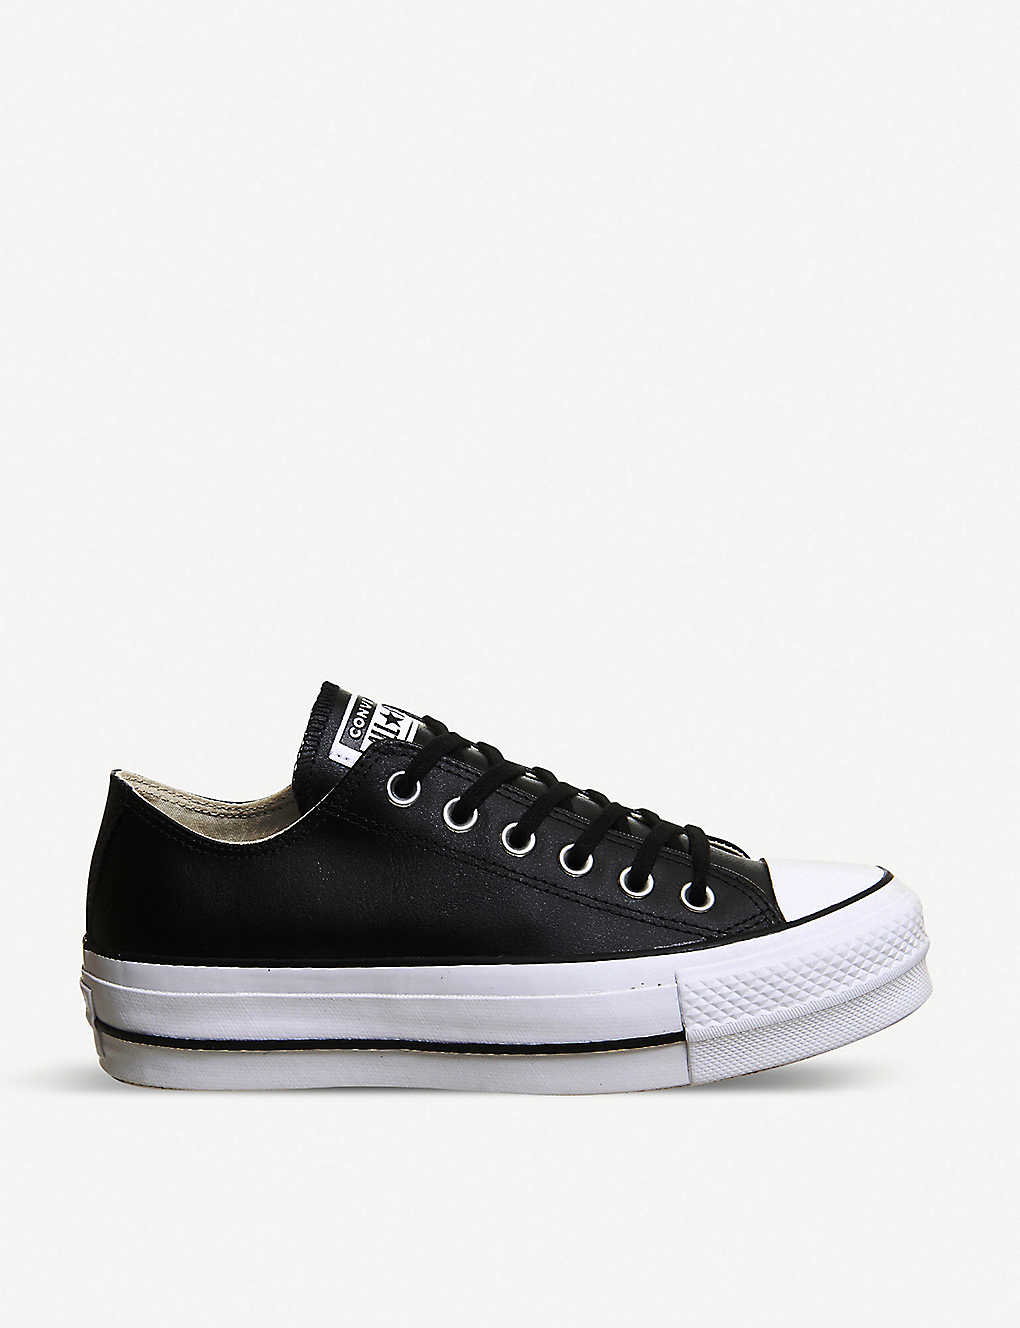 shoes, converse, low, black, leather, sneakers, trainers